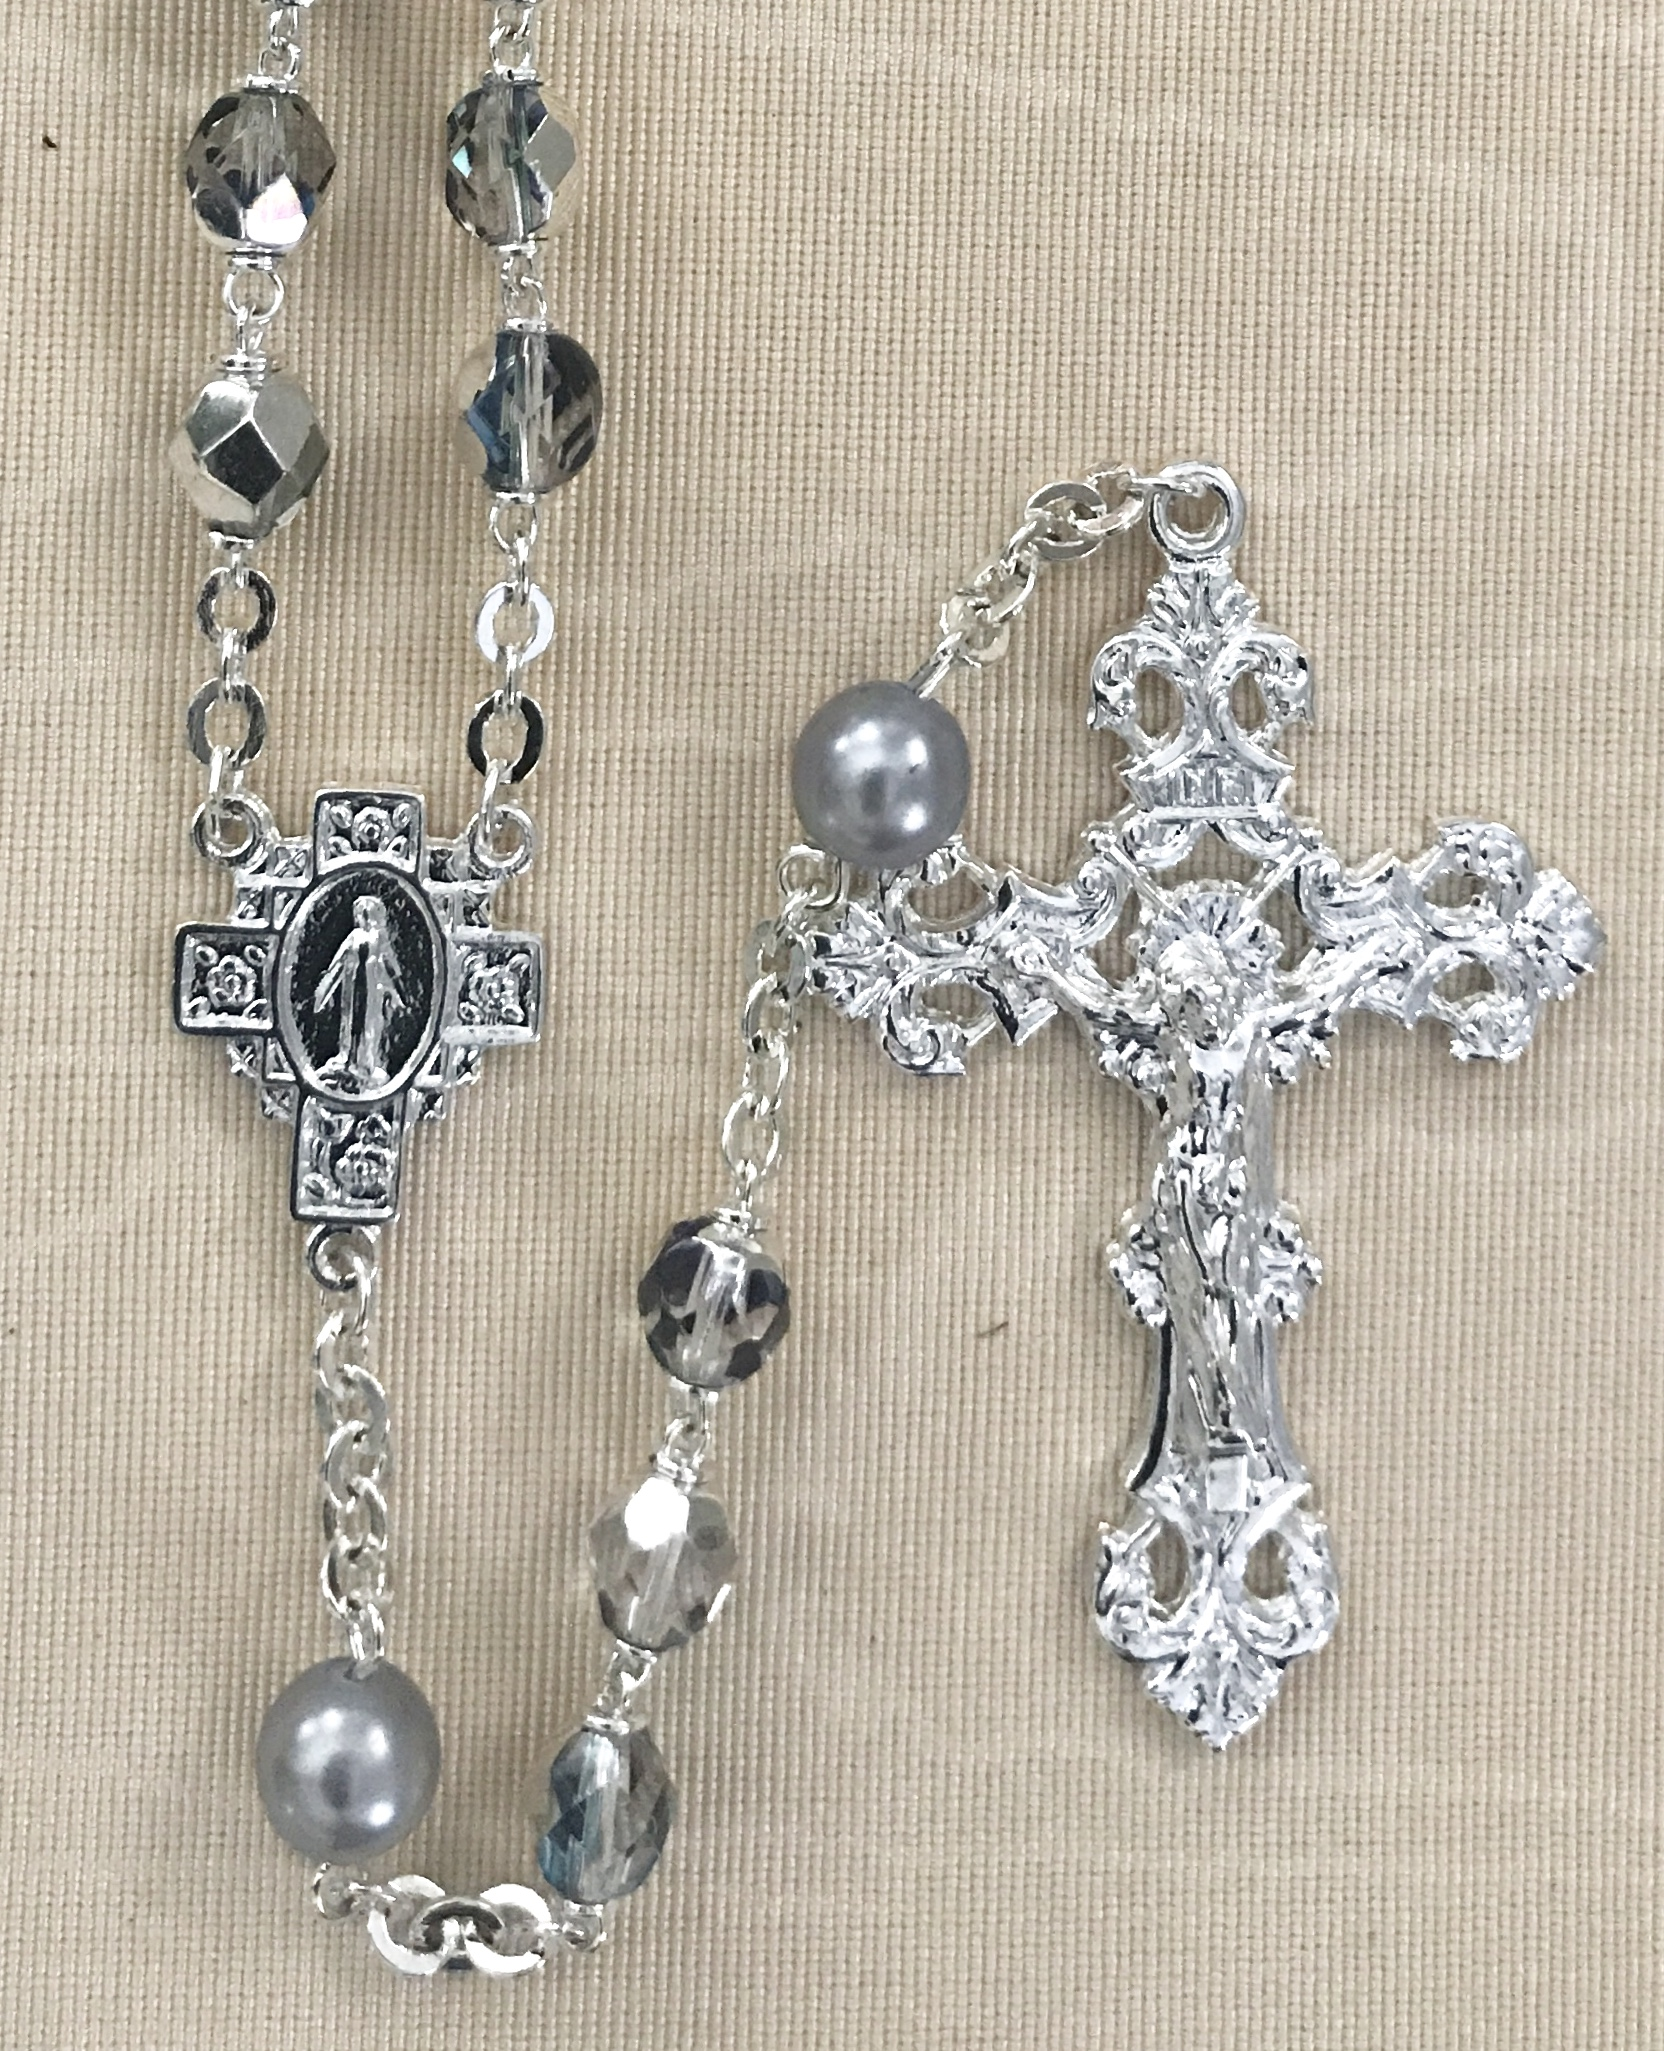 7mm CRYSTAL AB WITH SILVER PEARL OUR FATHER BEADS STERLING SILVER PLATED ROSARY GIFT BOXED